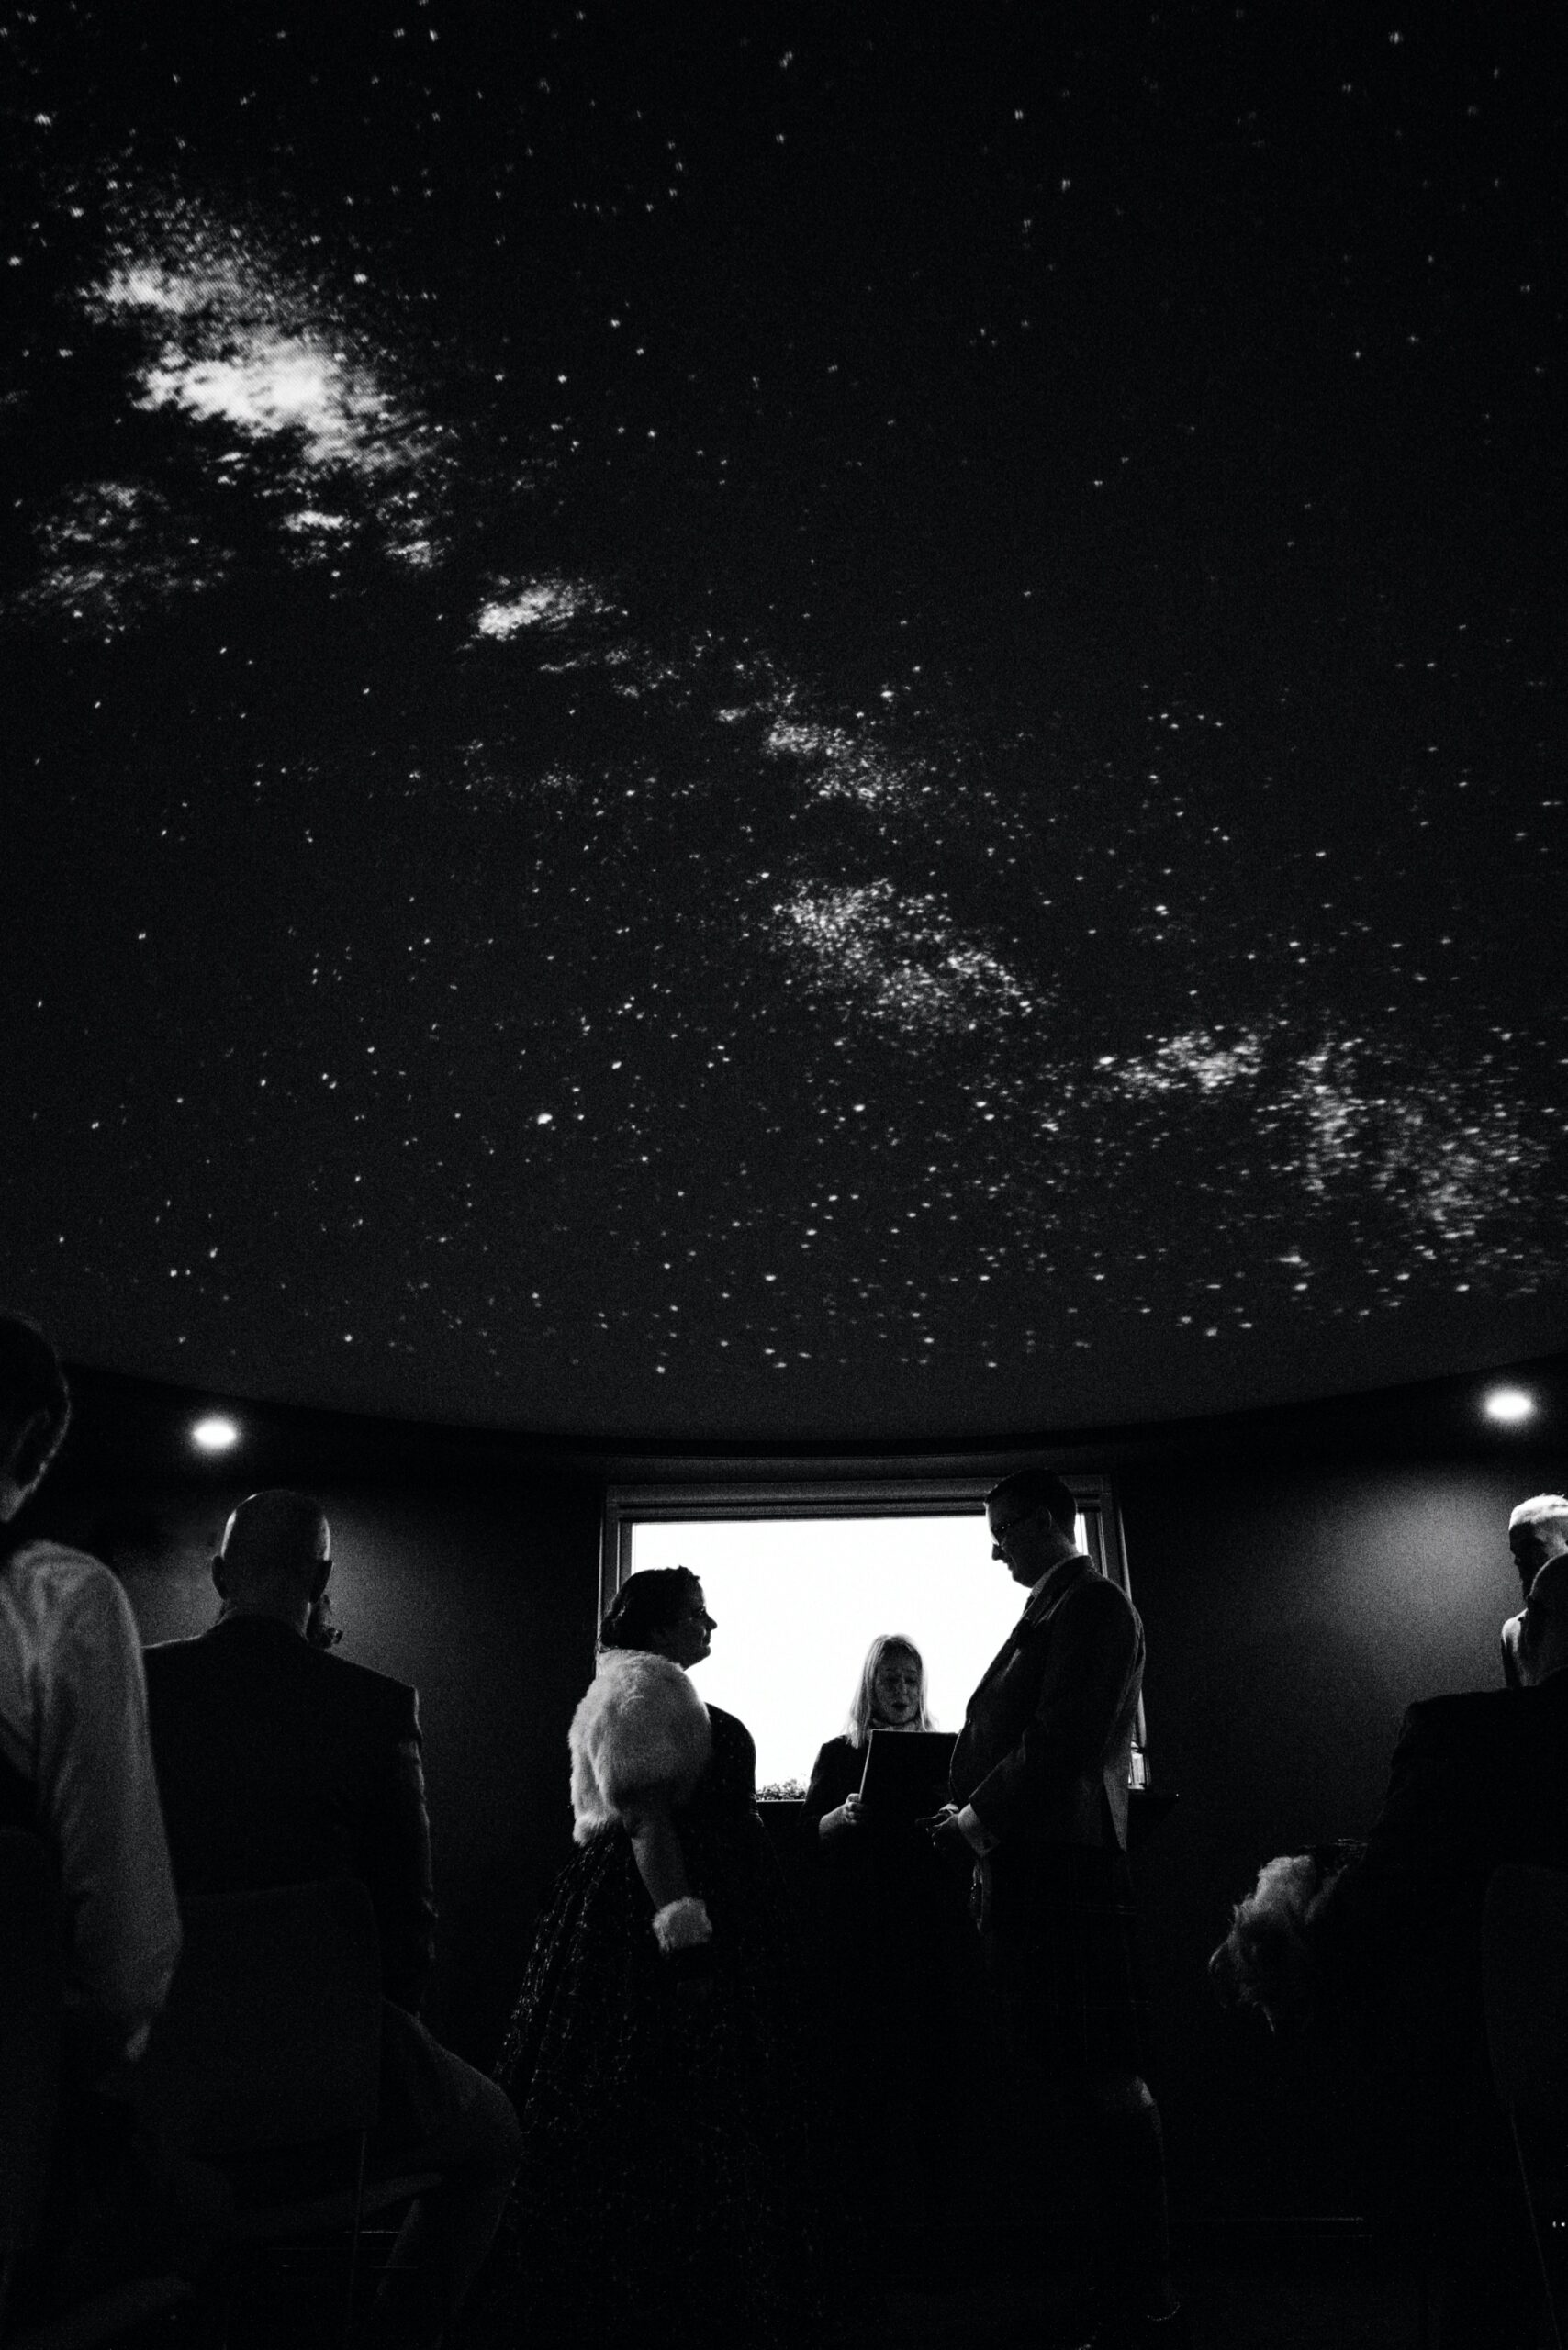 celestial wedding ceremony in the planetarium at the scottish dark sky observatory